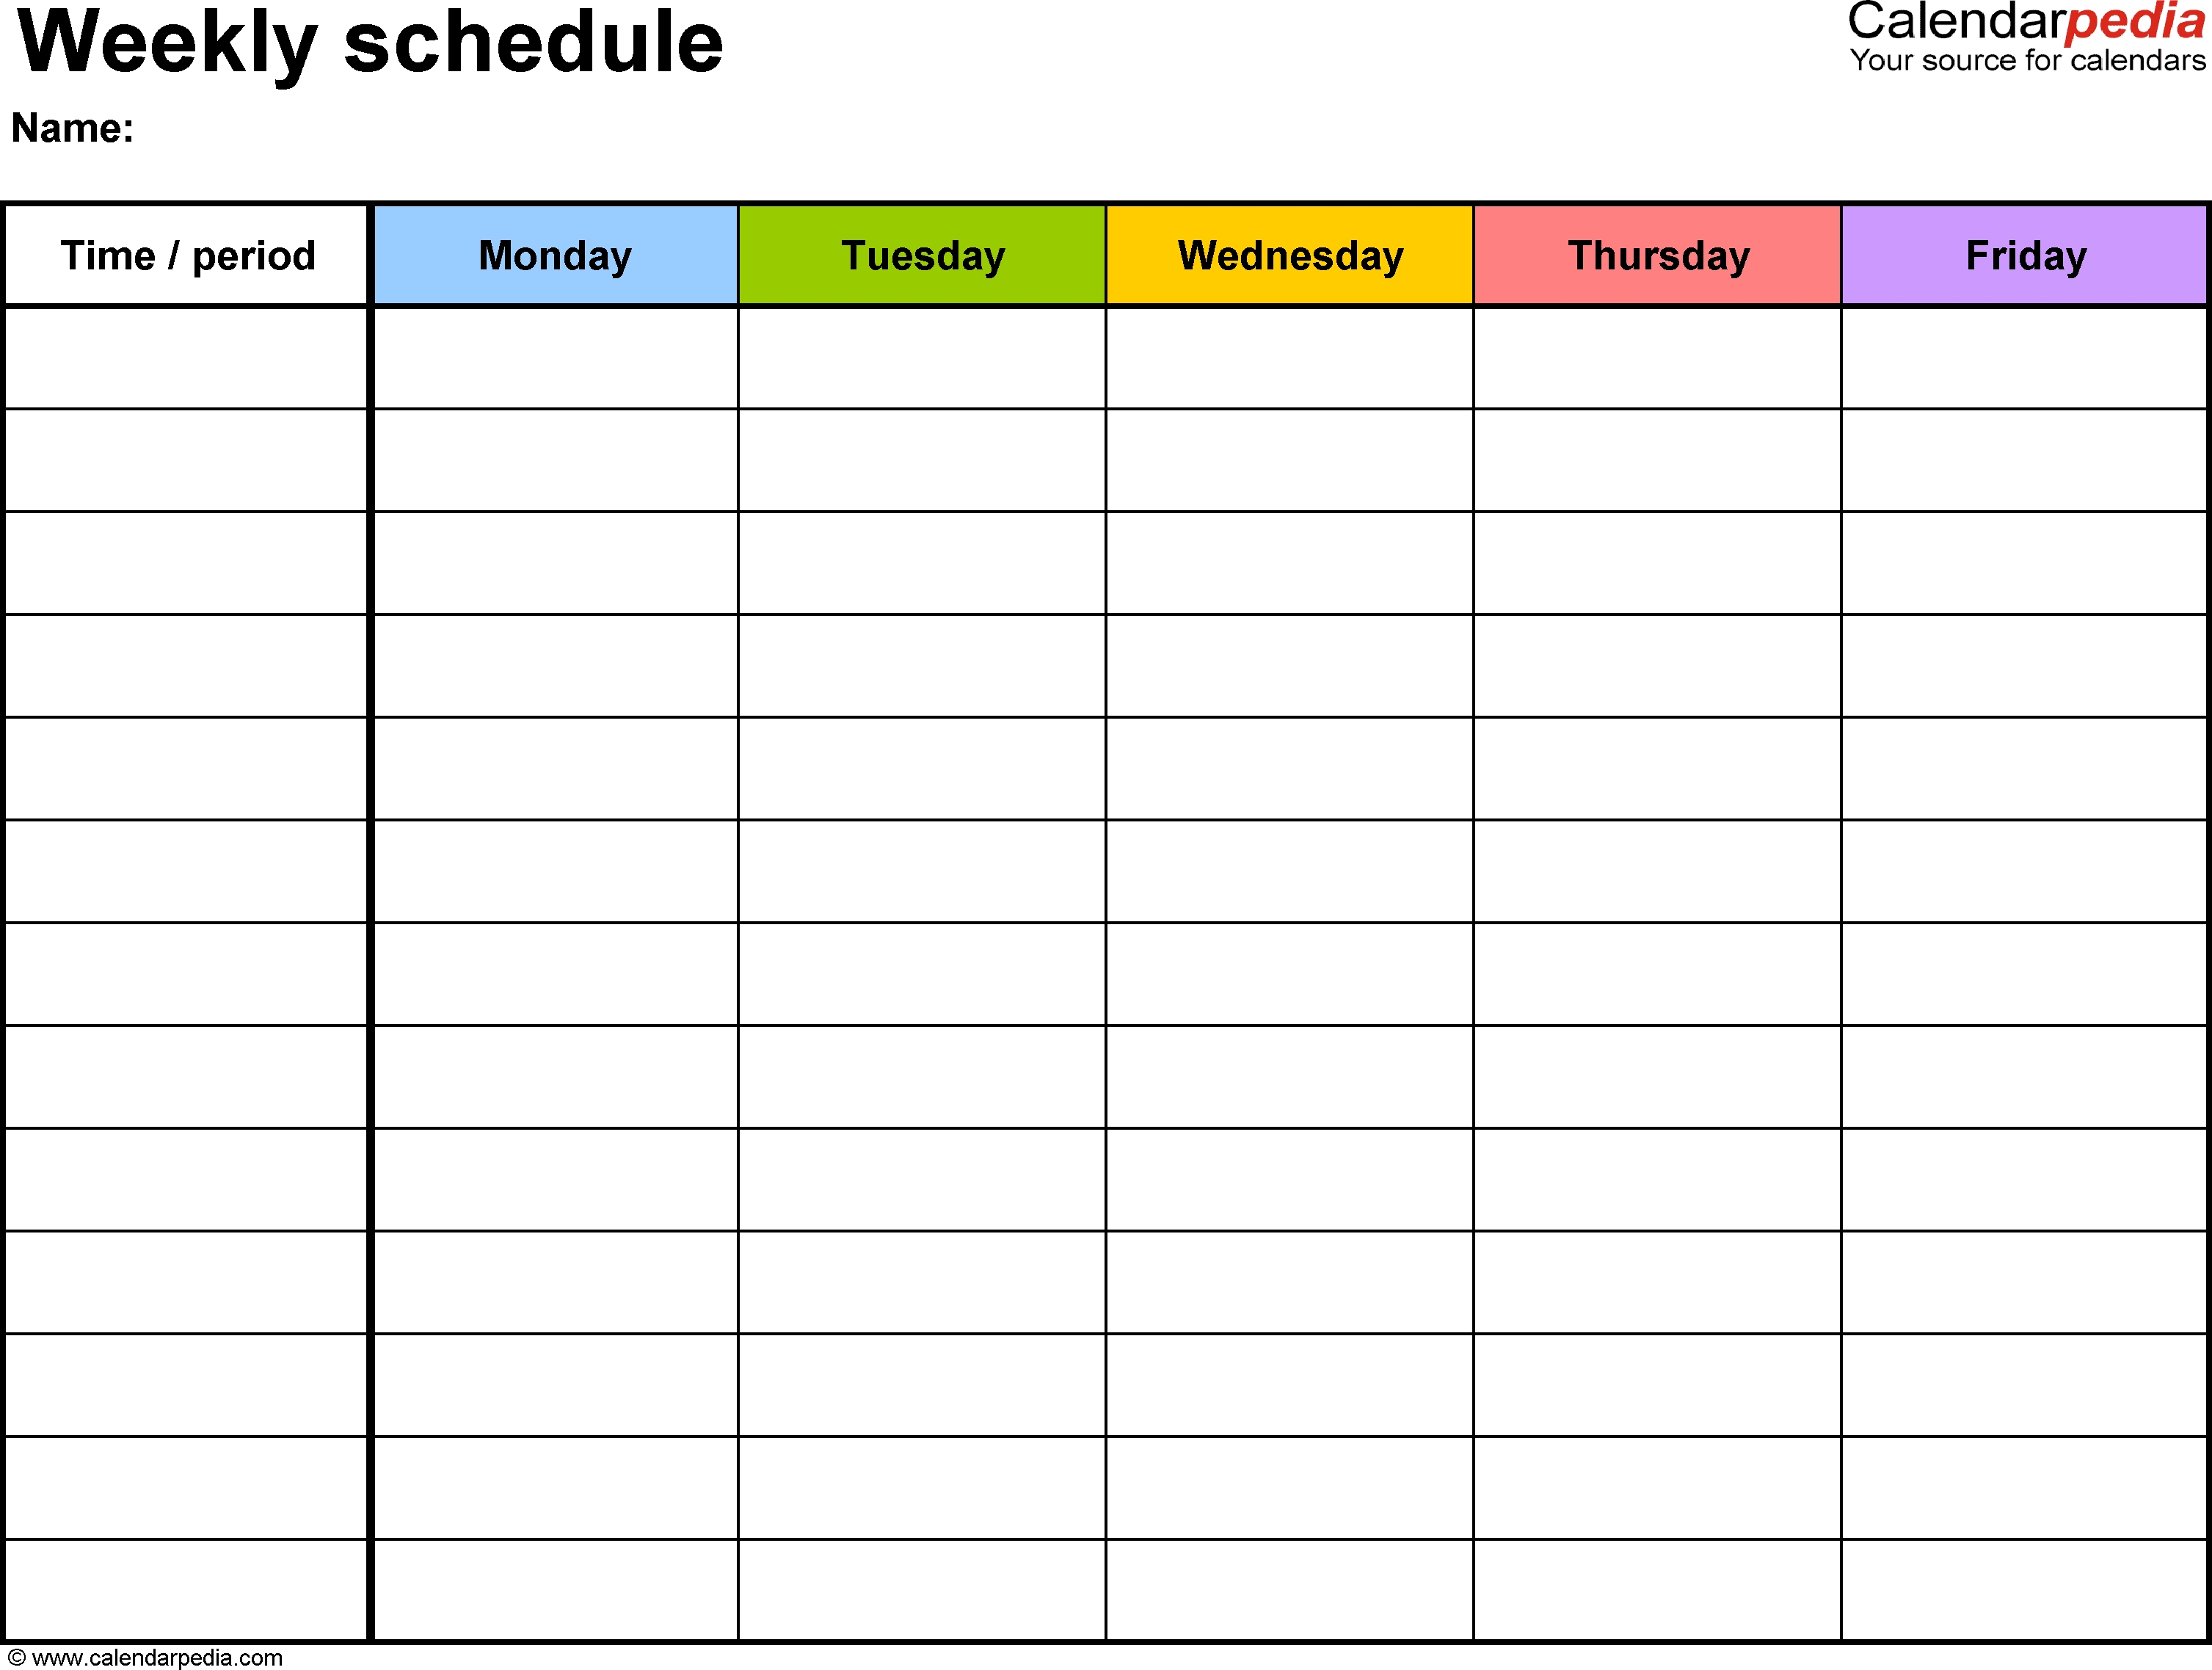 Free Weekly Schedule Templates For Word - 18 Templates intended for Summer Camp Schedule Template Blank